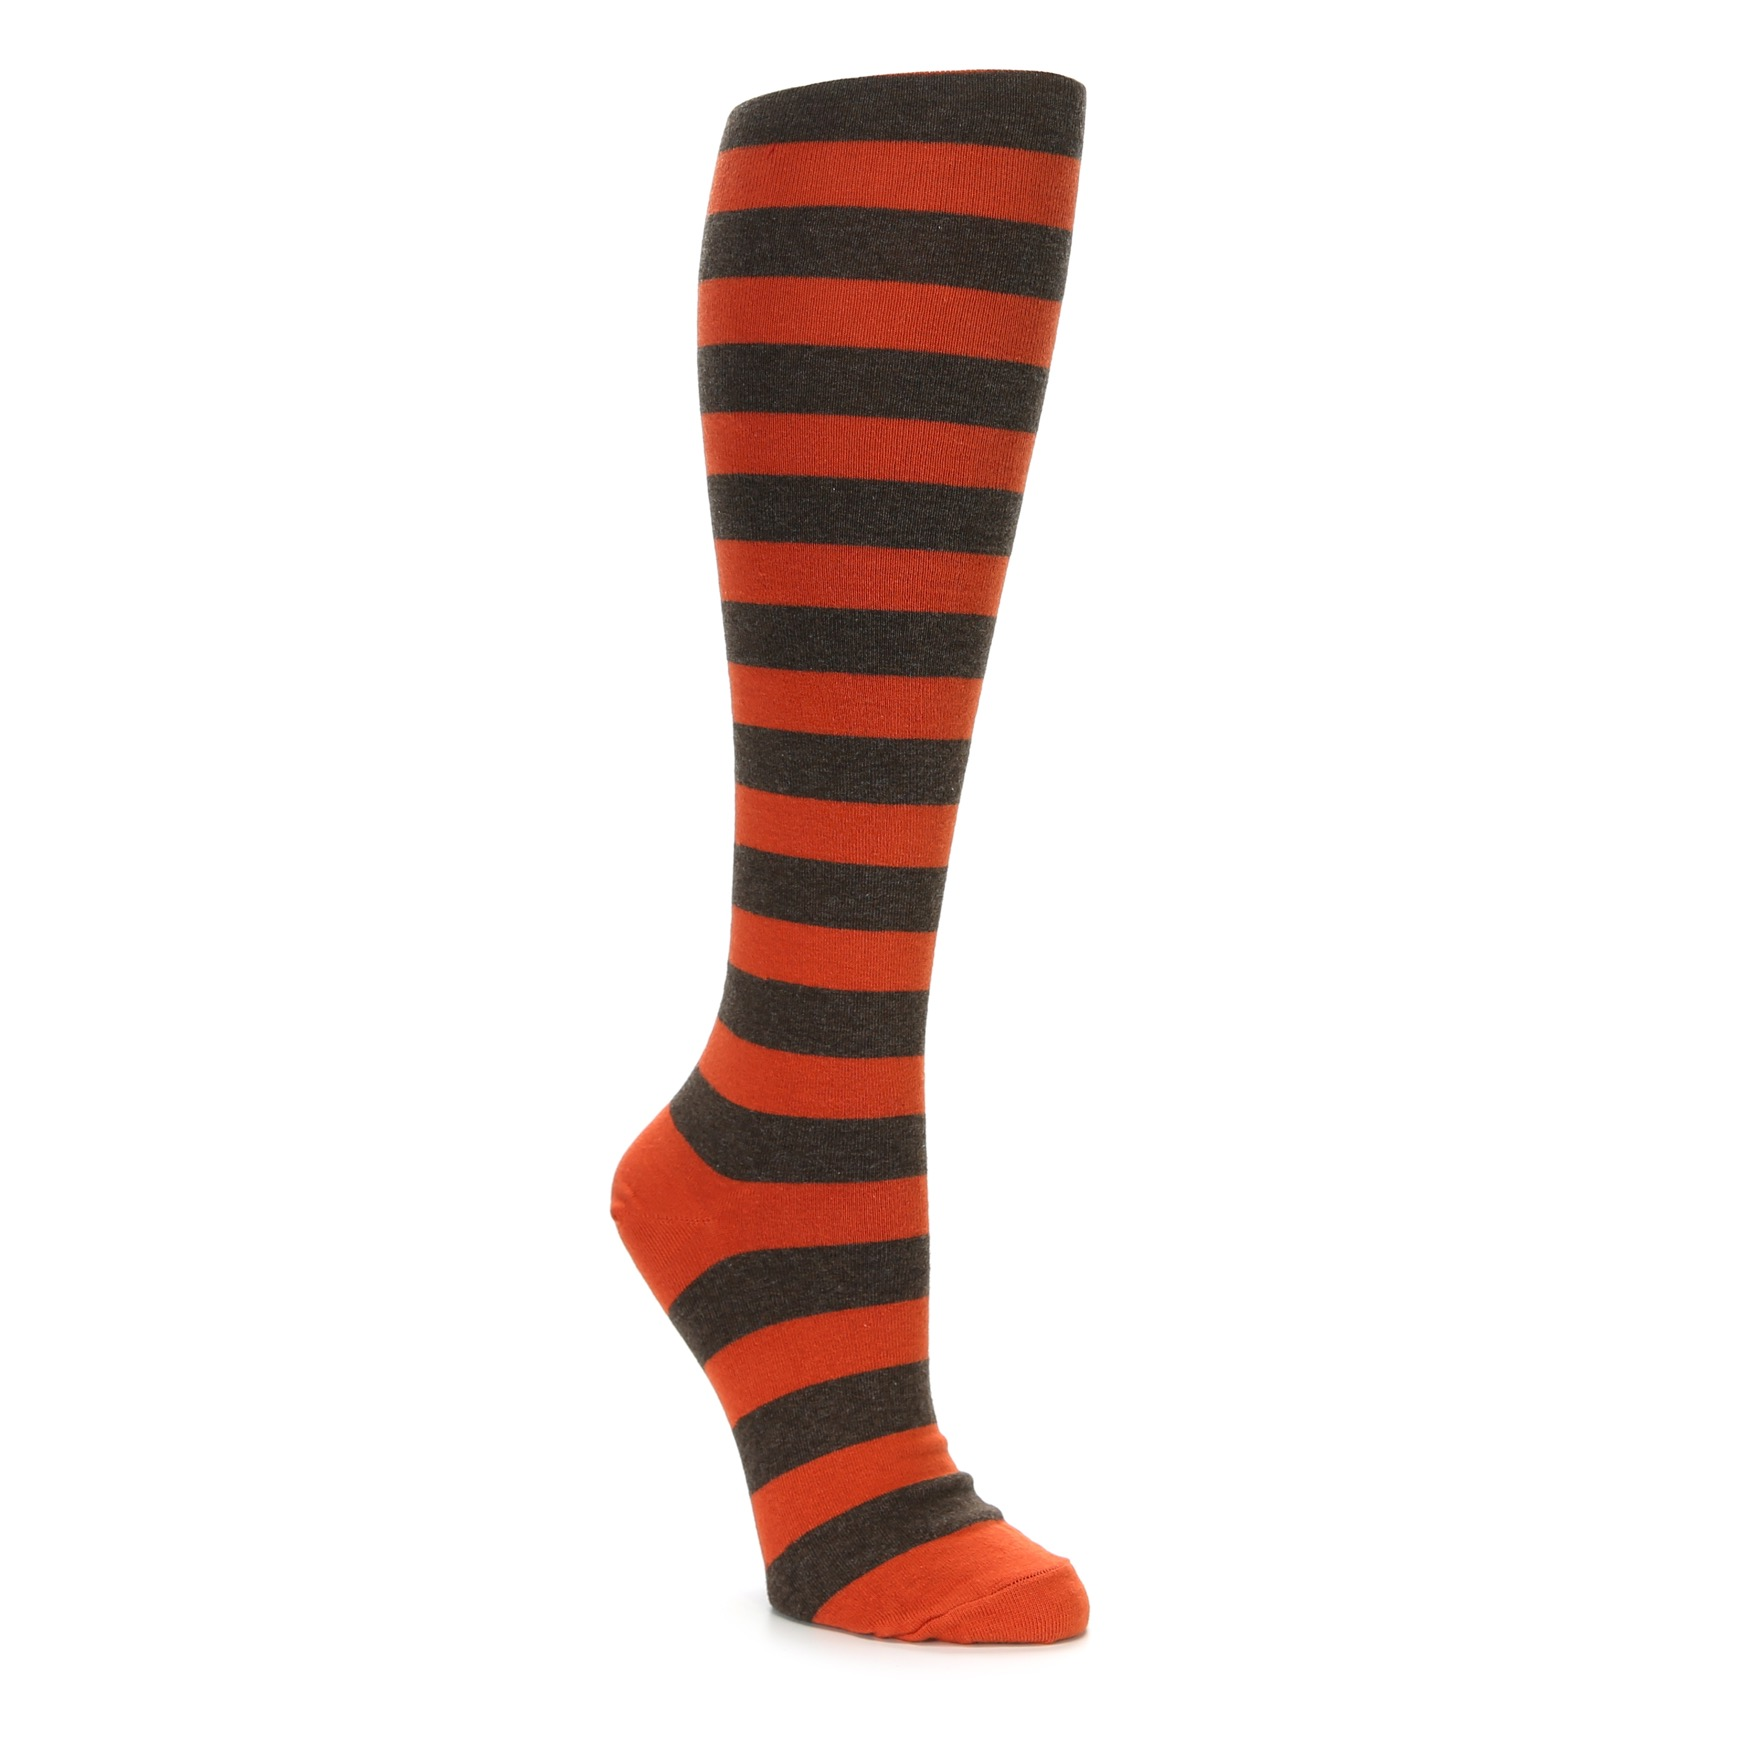 494ed8a429c Brown Orange Stripes Women s Knee High Socks